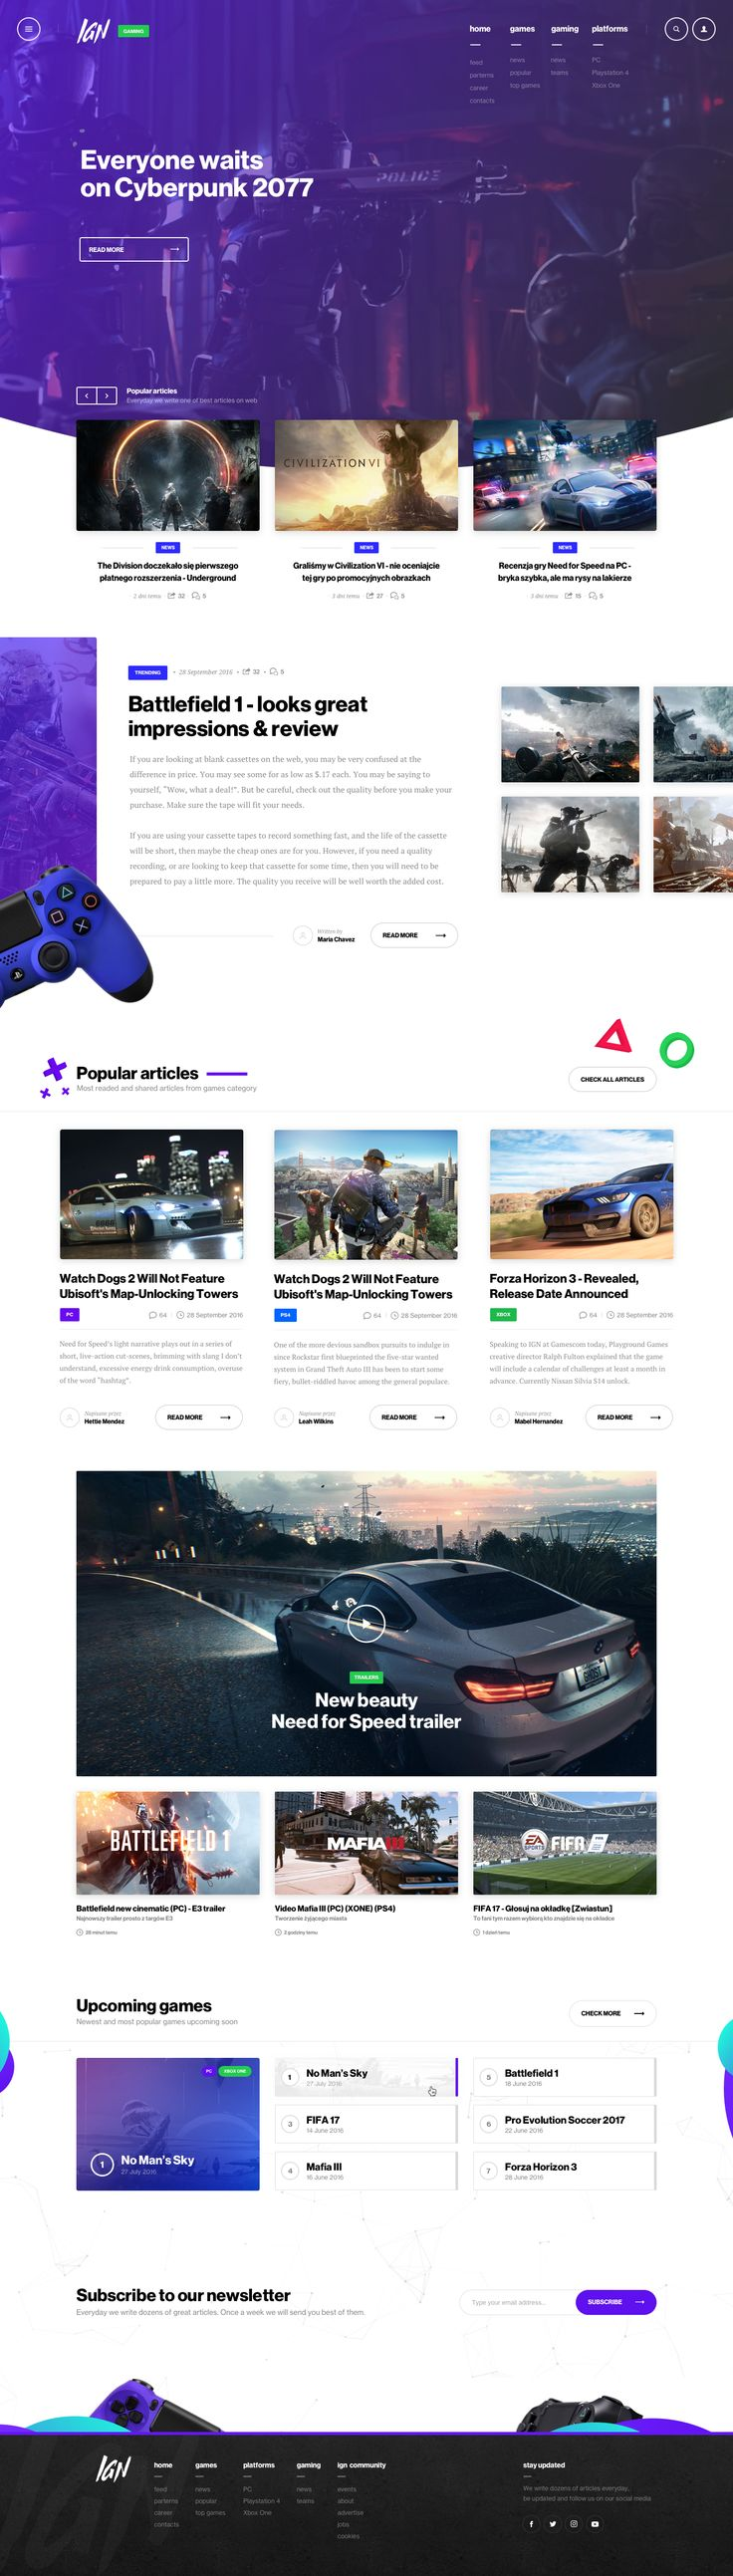 Game news site concept